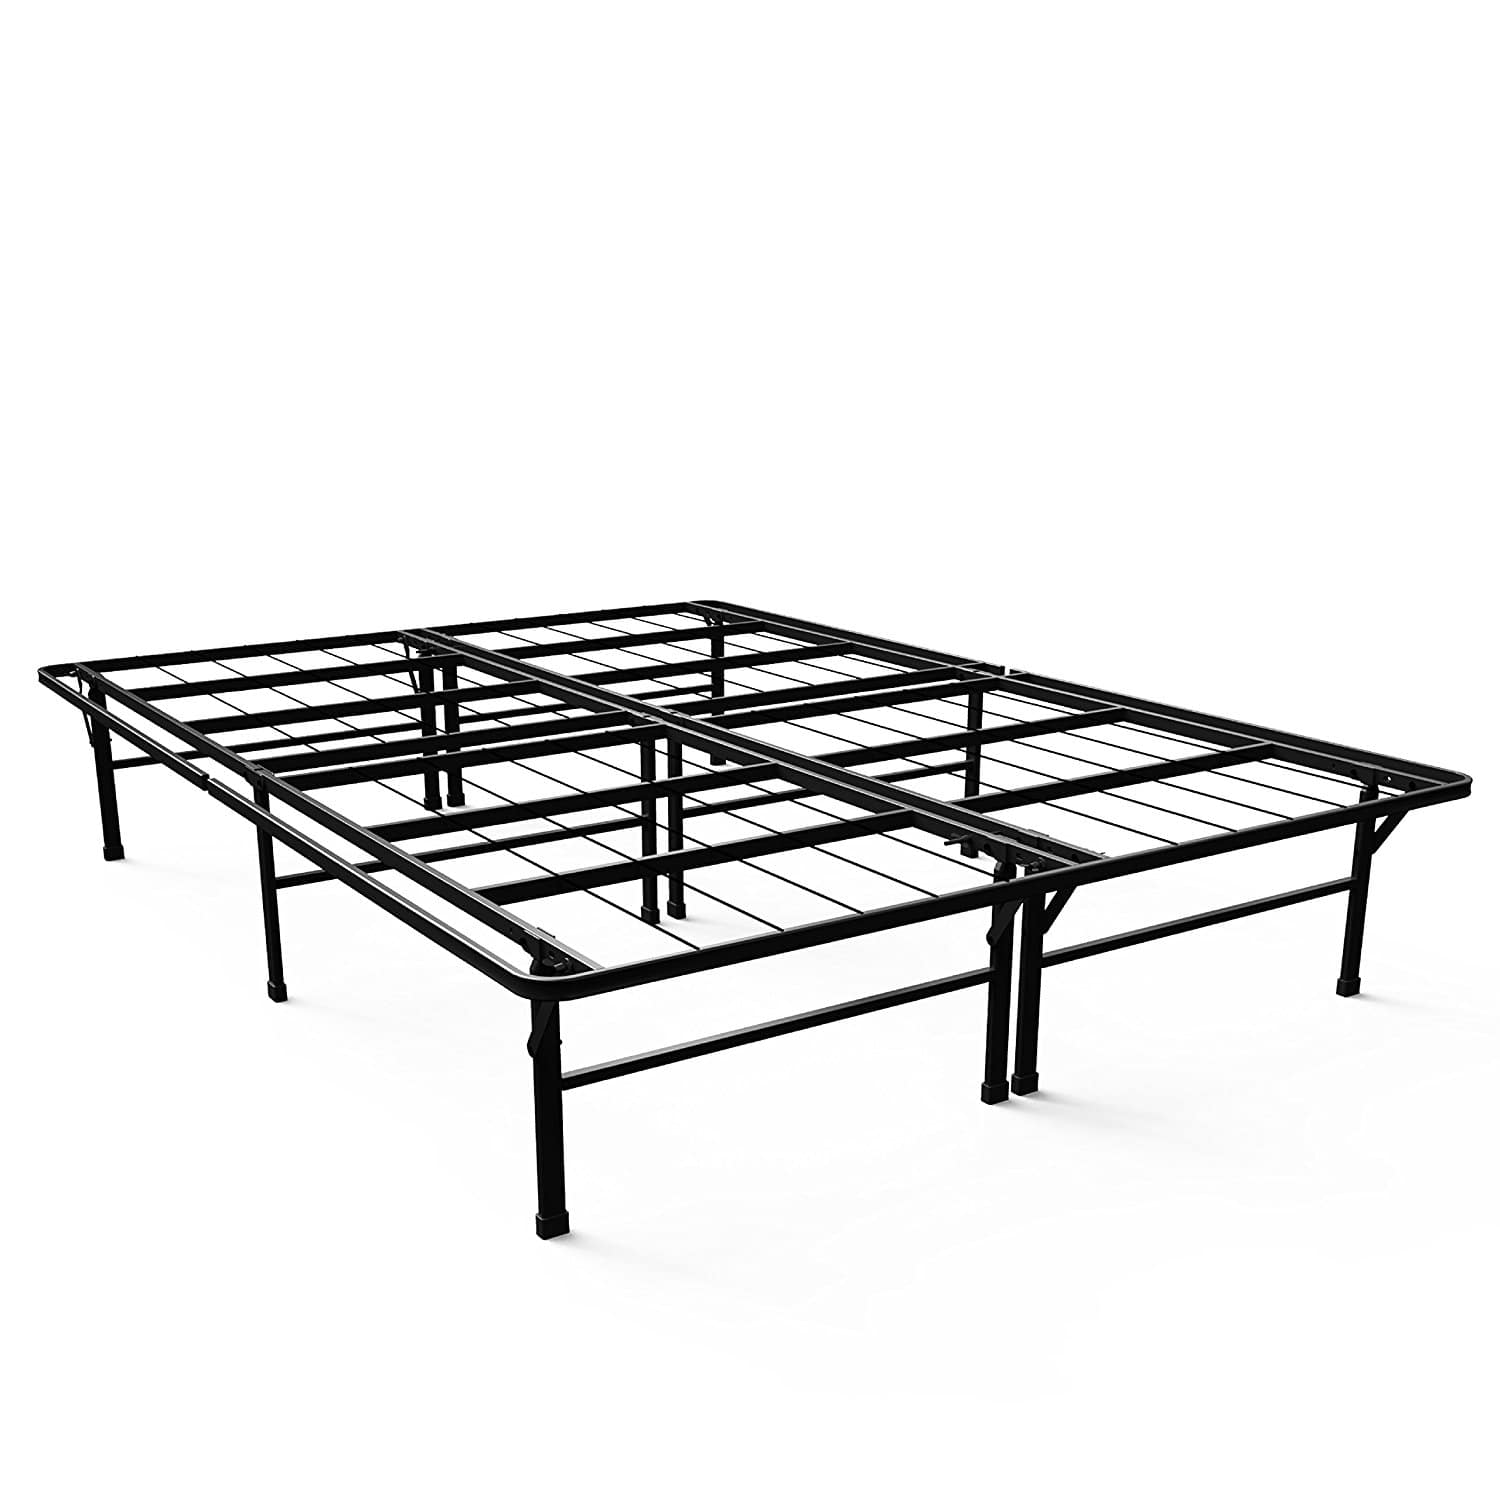 Zinus 14 smartbase deluxe platform bed frame queen 61 for Bed frame and mattress deals